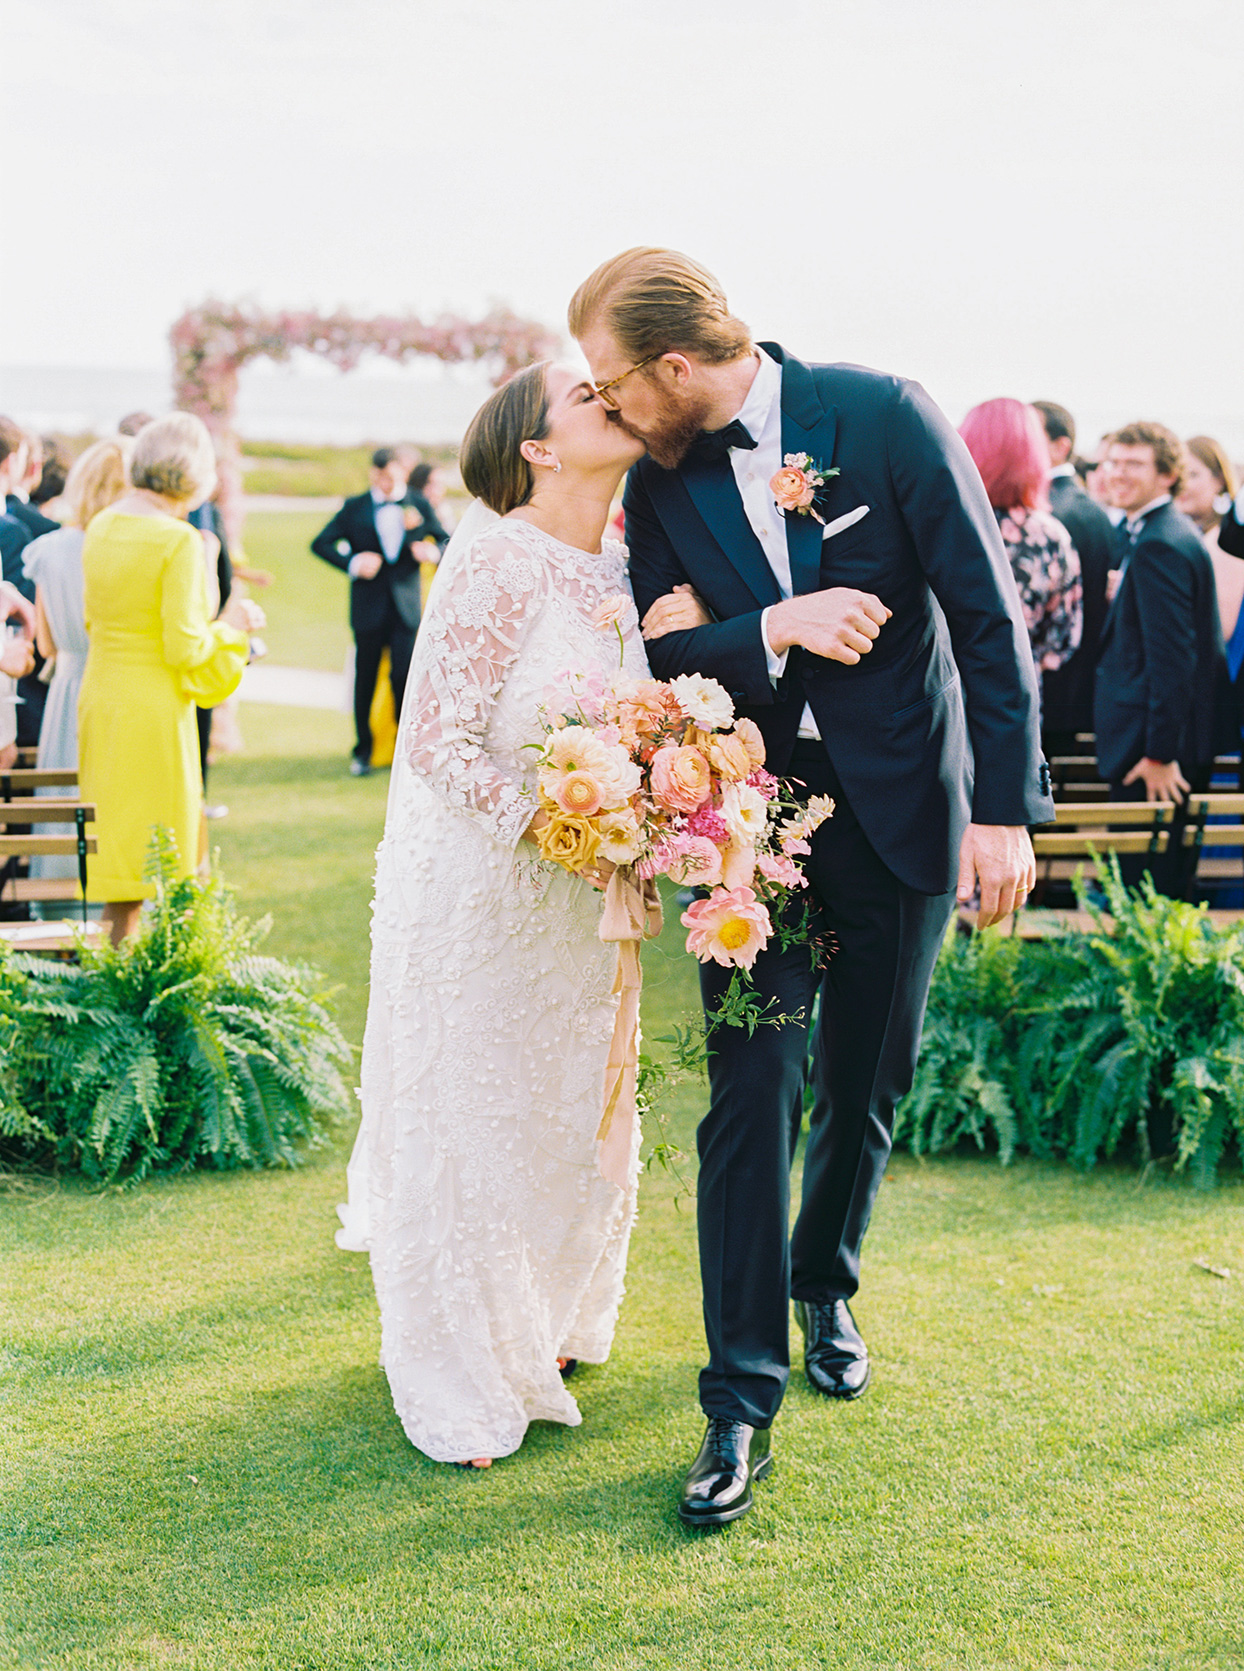 lauren dan wedding ceremony recessional kiss